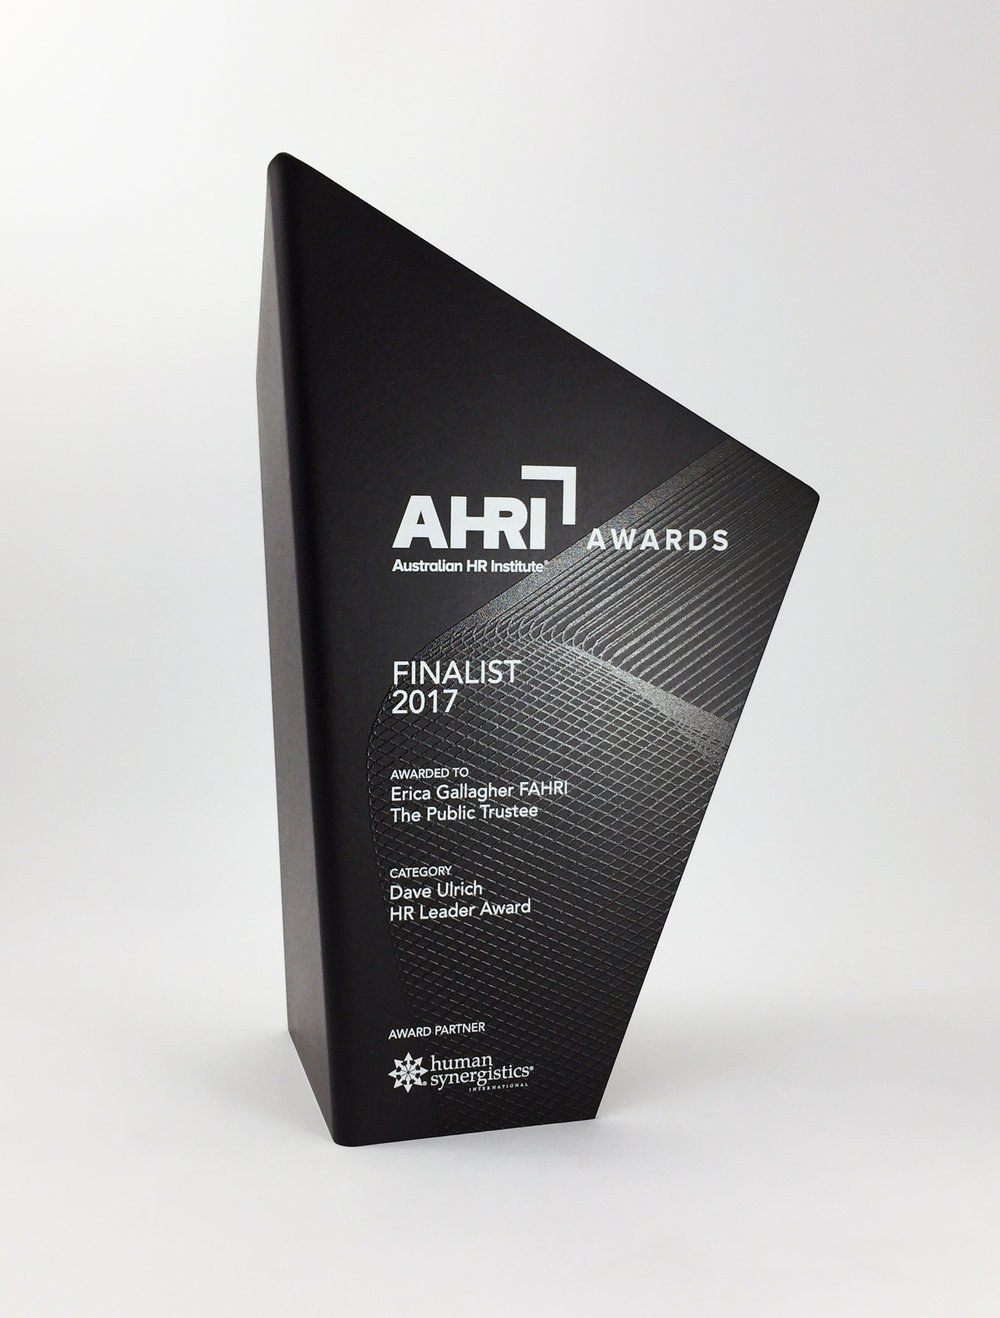 AHRI-aluminium-graphic-trophy-award-01.jpg